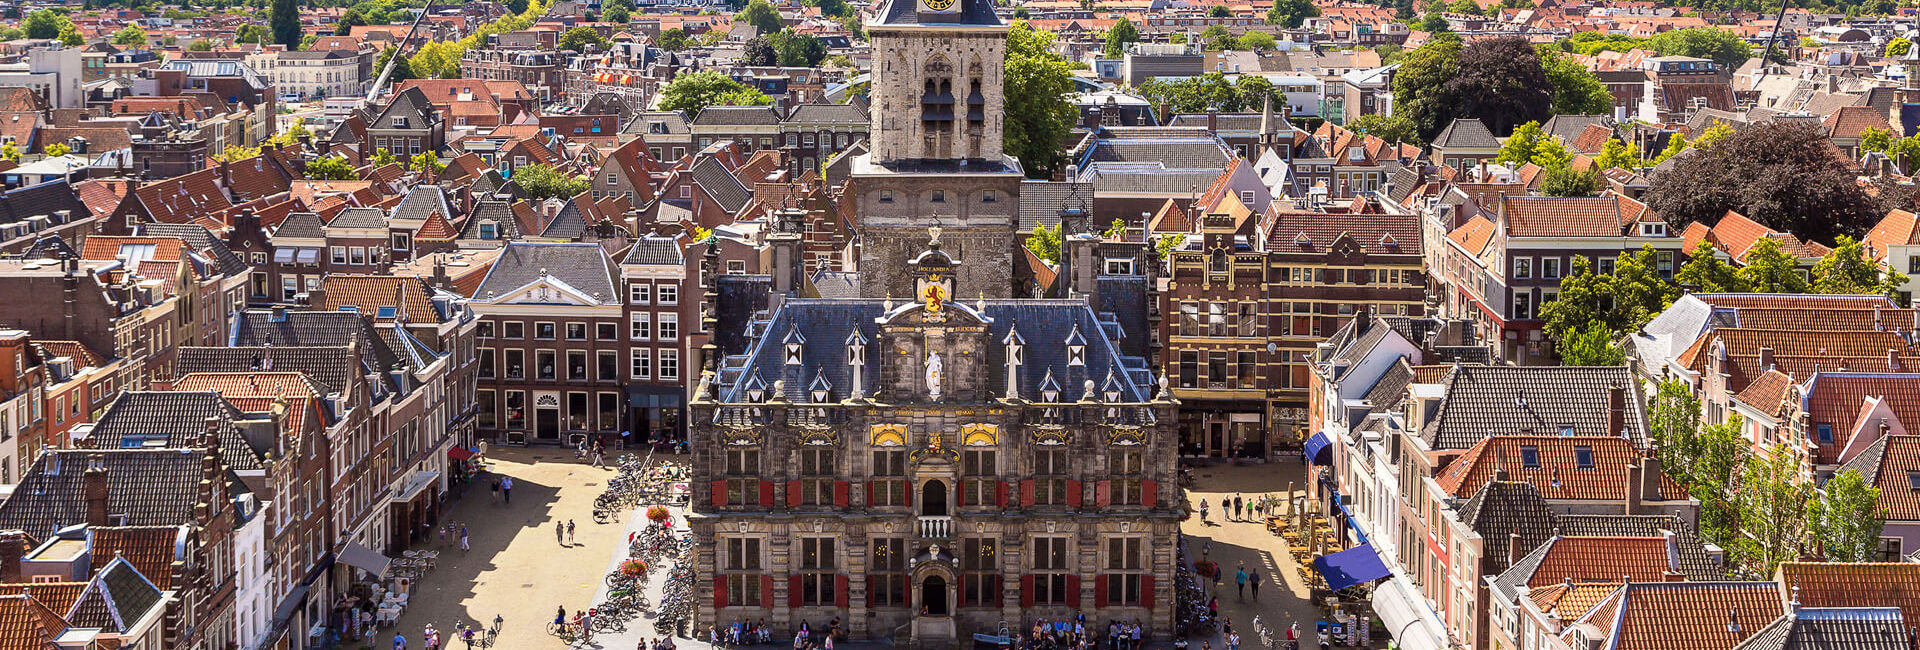 Town Hall from the tower of The New Church Delft - Explore Delft - Gasterij 't Karrewiel